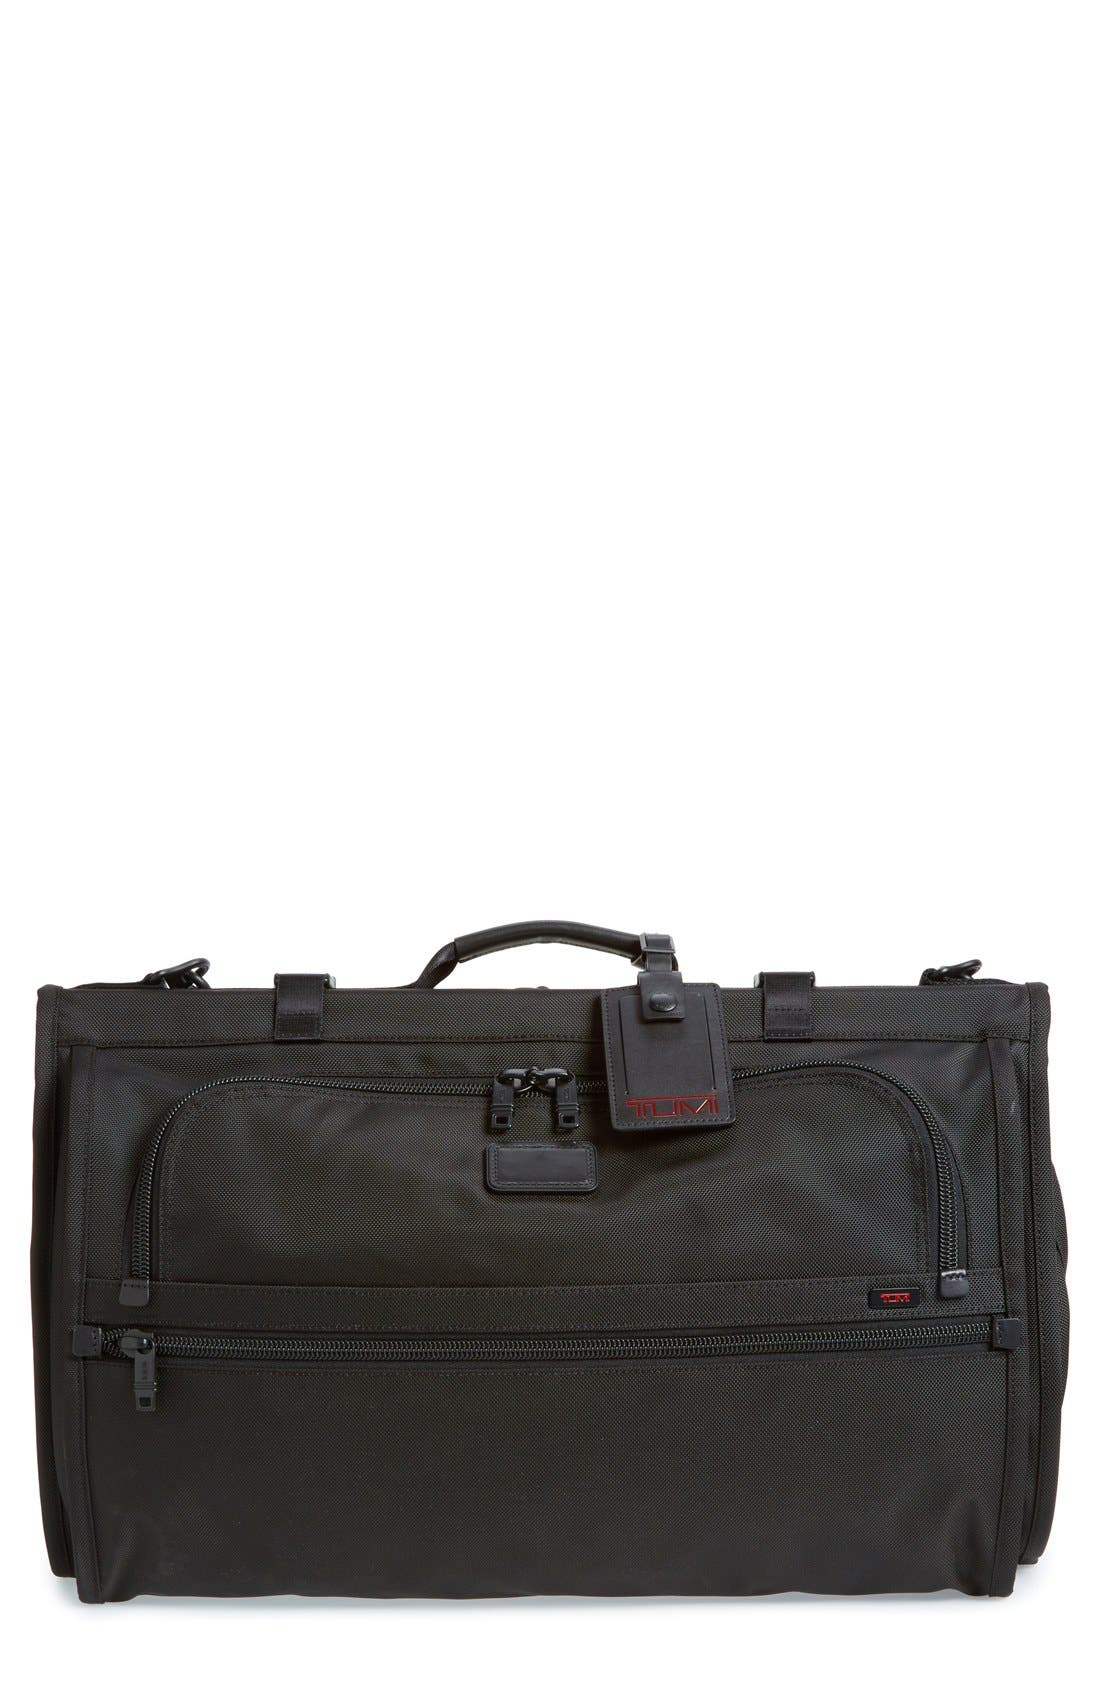 Alternate Image 1 Selected - Tumi 'Alpha 2' Trifold Carry-On Garment Bag (22 Inch)